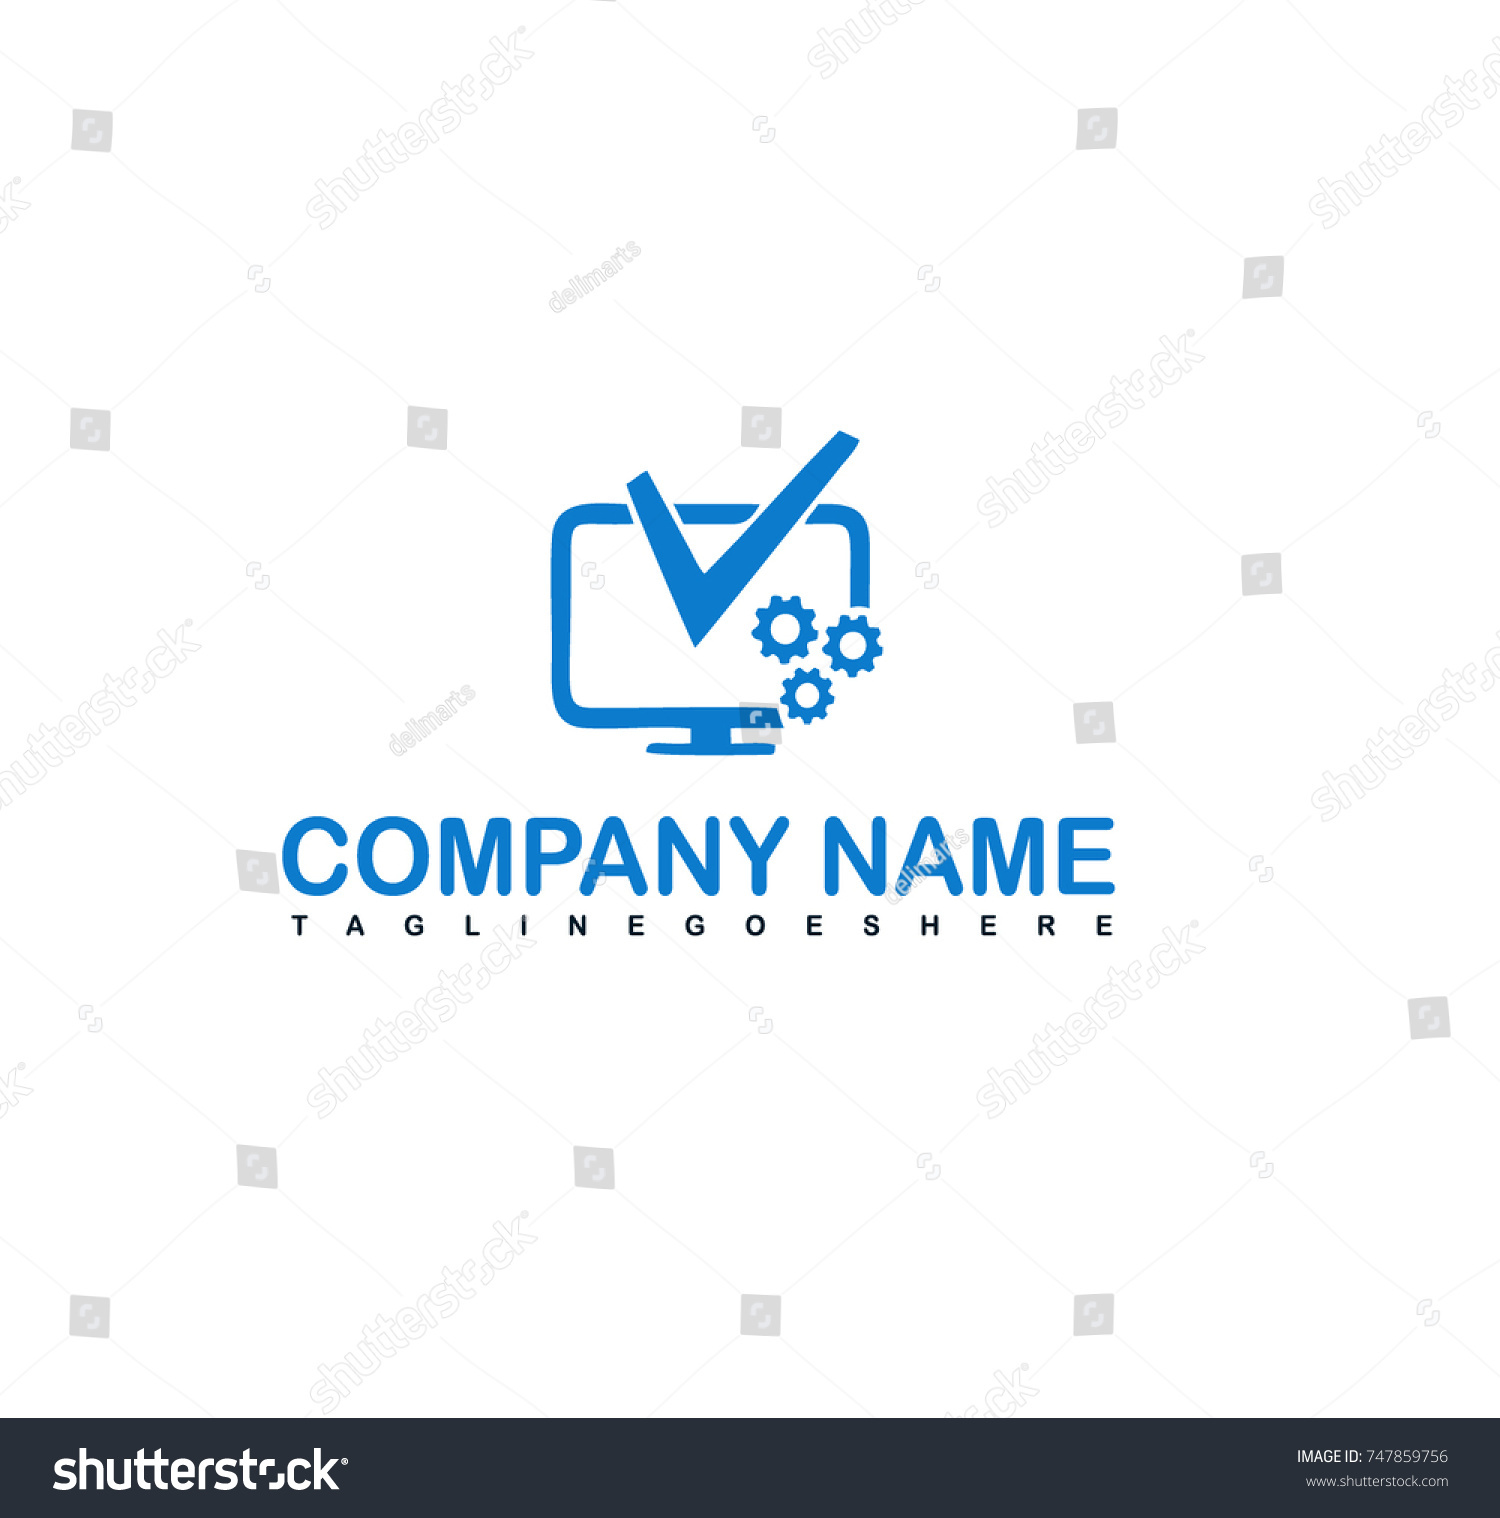 Computer repair logo Stock Vectors Royalty Free Computer